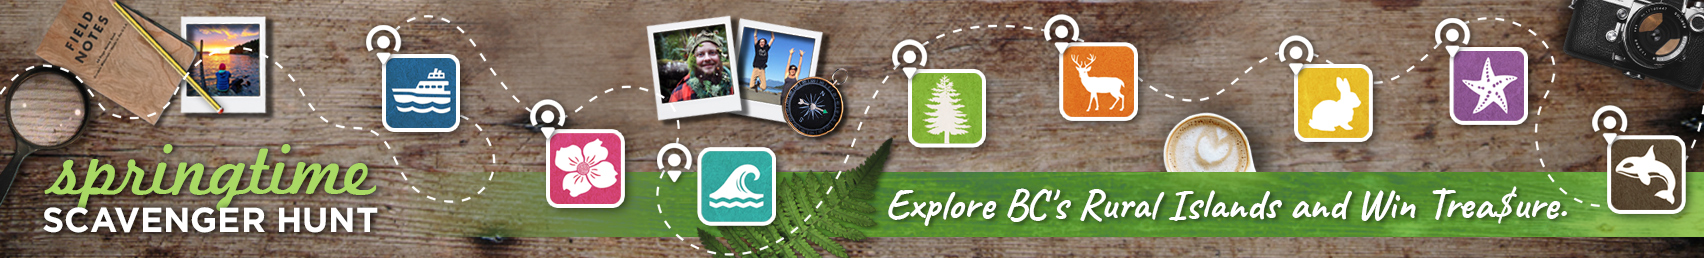 Springtime Scavenger Hunt - Explore BC's Rural Islands and Win Treasure